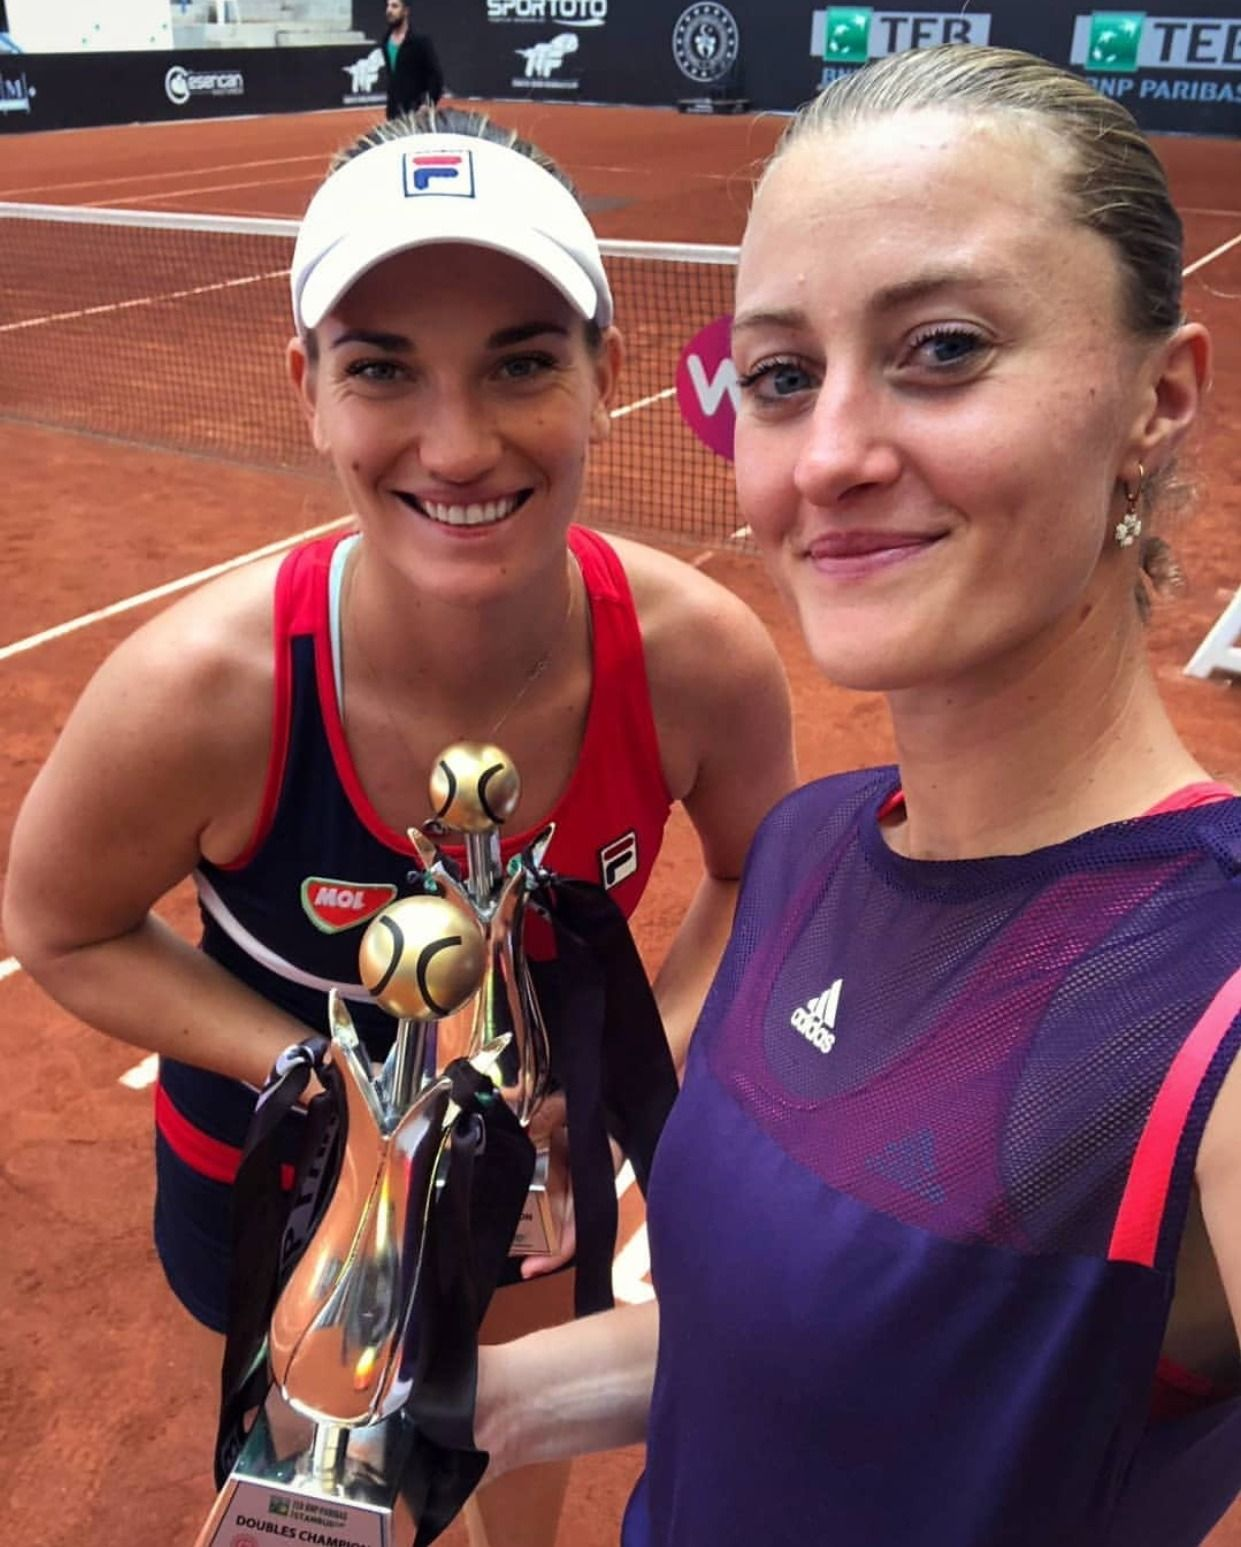 WTA ISTANBUL 2019 - Page 2 IMG_2298-1